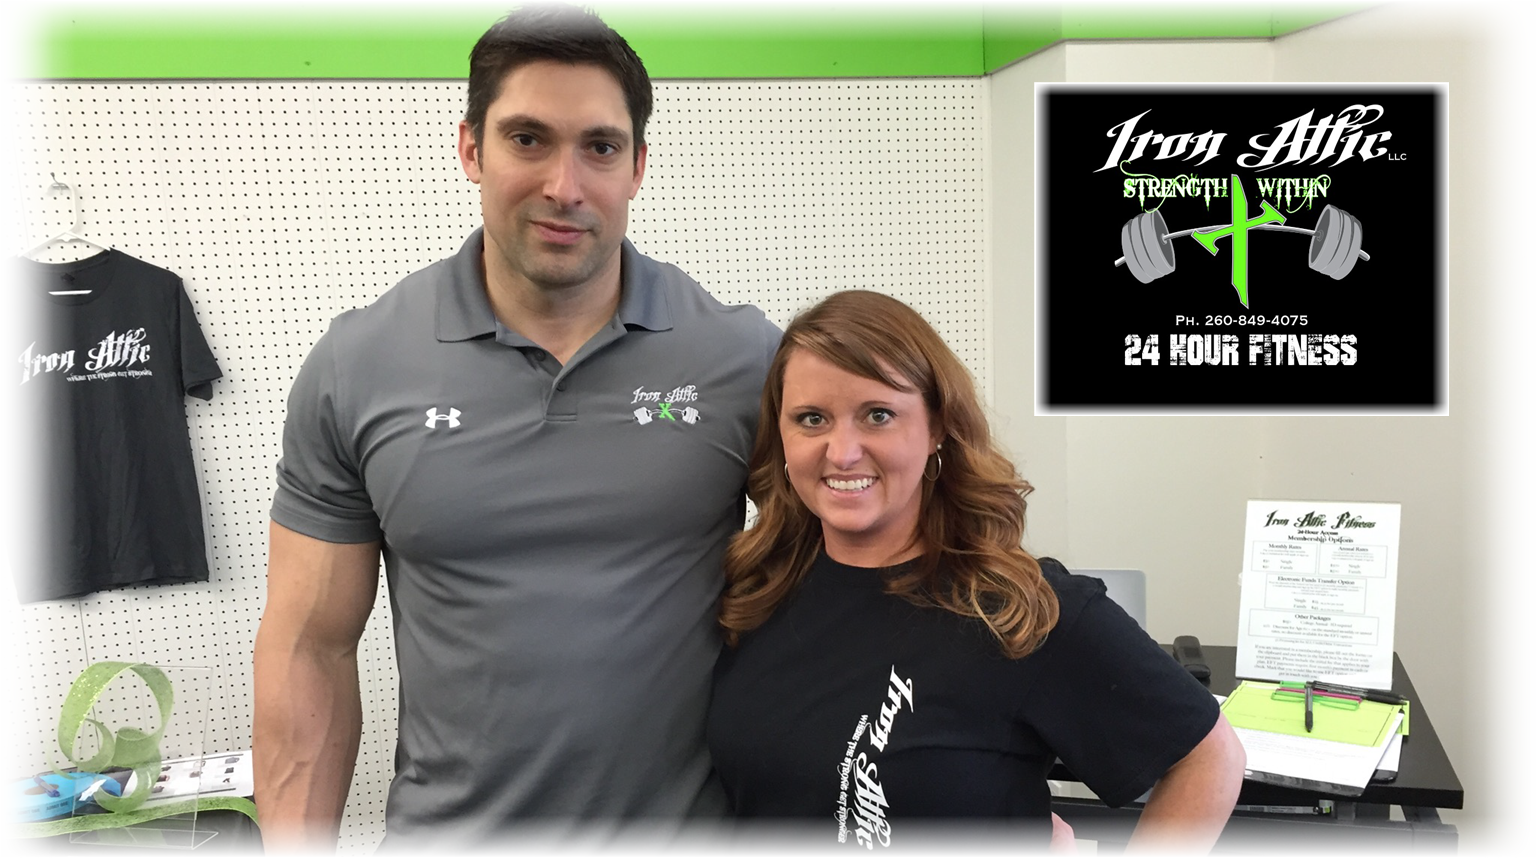 Iron Attic Fitness